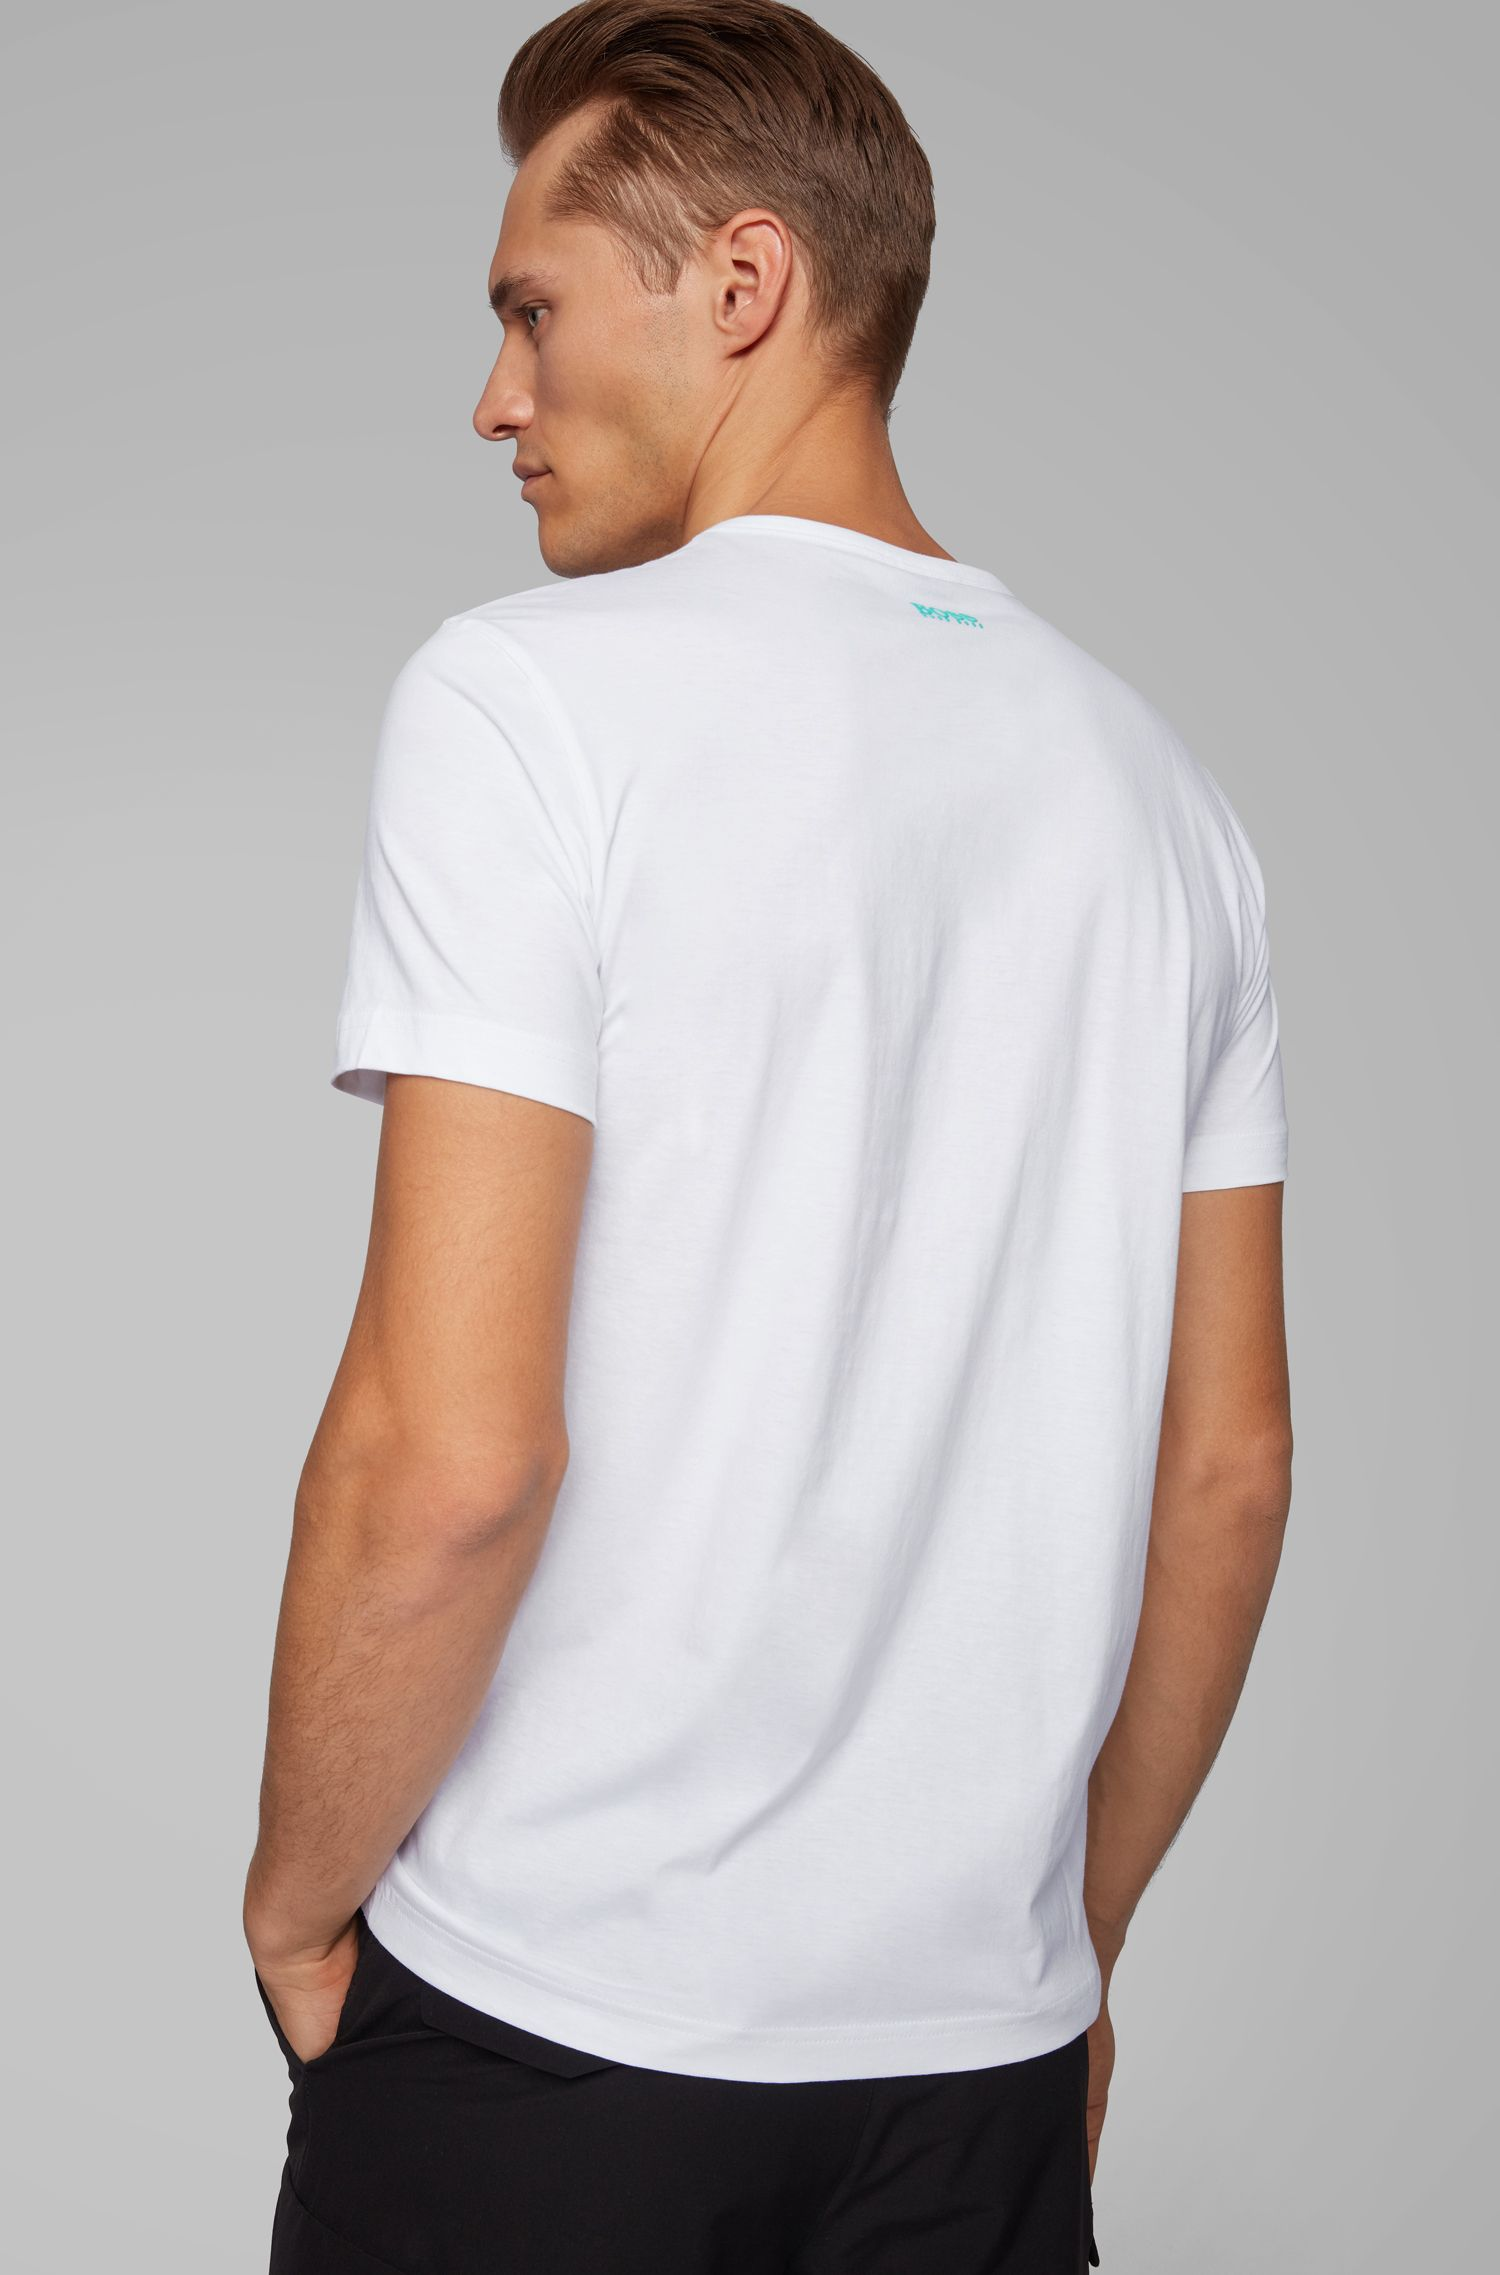 Regular-fit T-shirt in cotton with deconstructed logo artwork, White